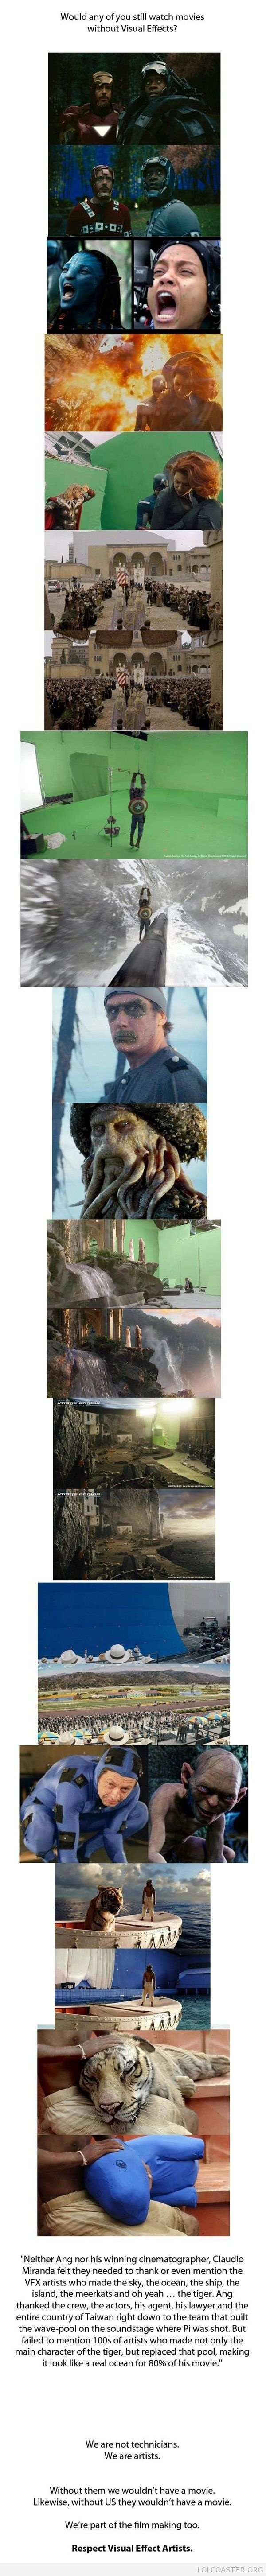 Would You Watch Any Of These Films Without Visual Effects?